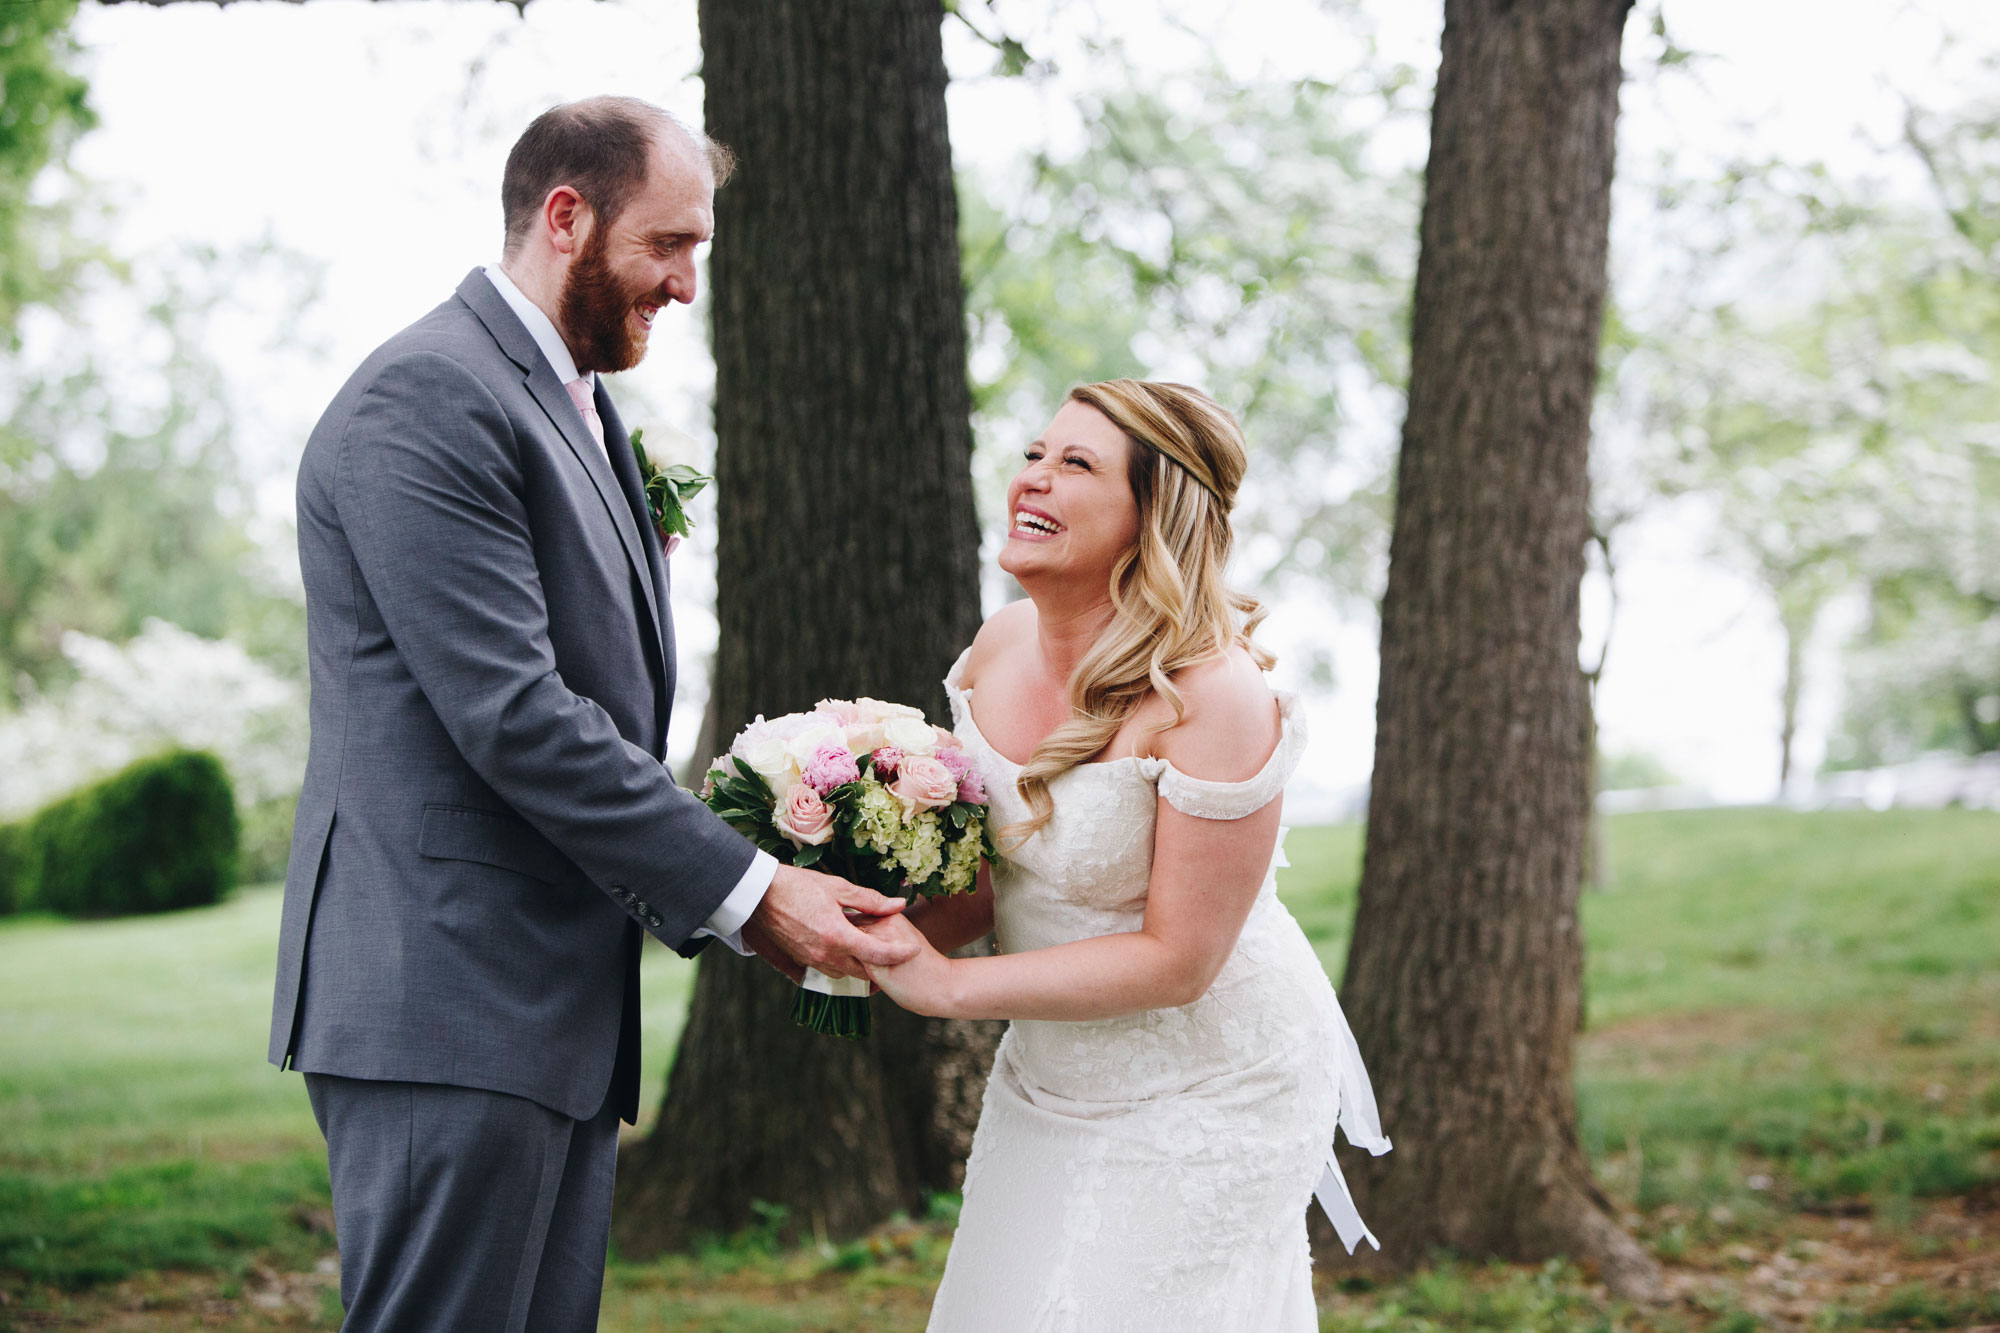 Heather+Matt  King of Prussia, PA